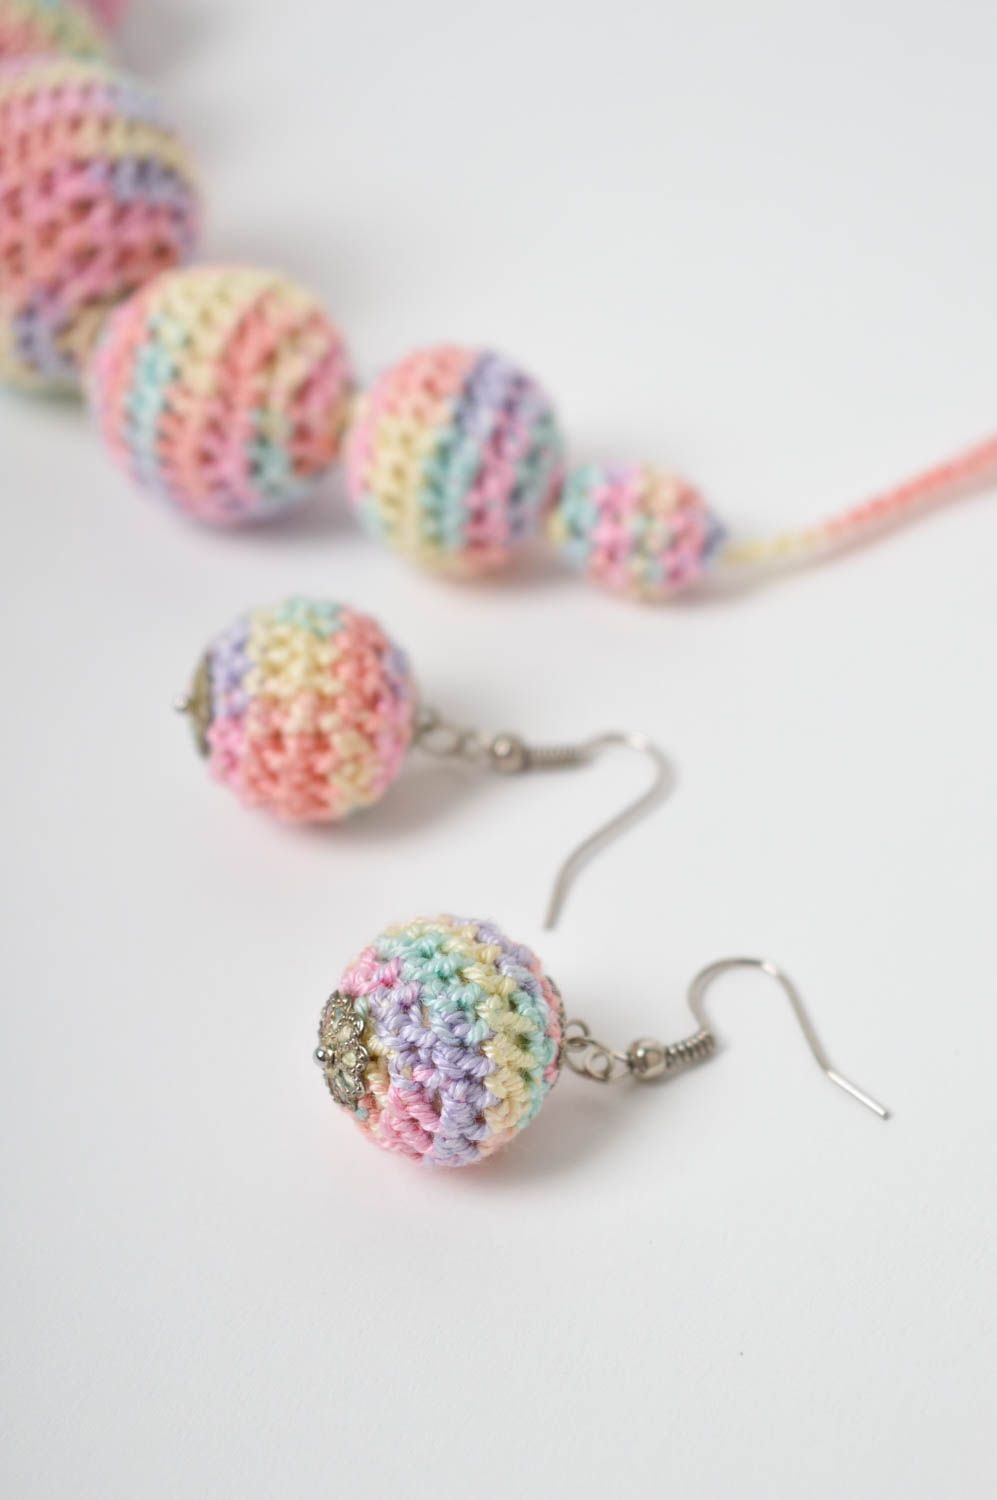 Handmade crochet earrings crochet ball necklace costume jewelry designs photo 3